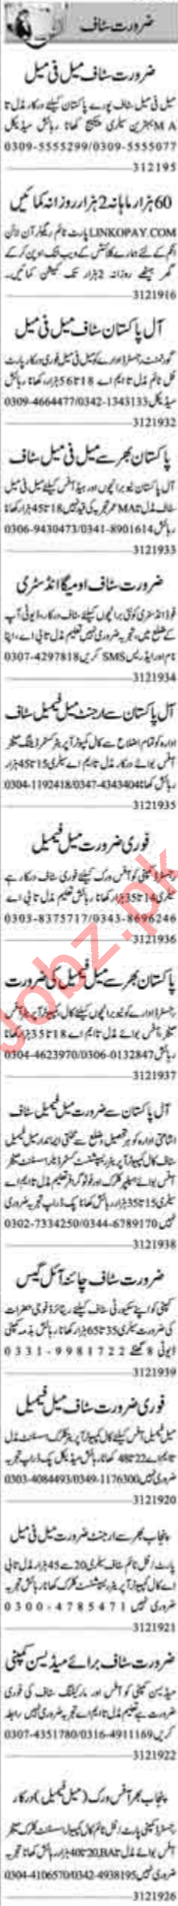 Daily Dunya Newspaper Classified Ads 2019 In Lahore